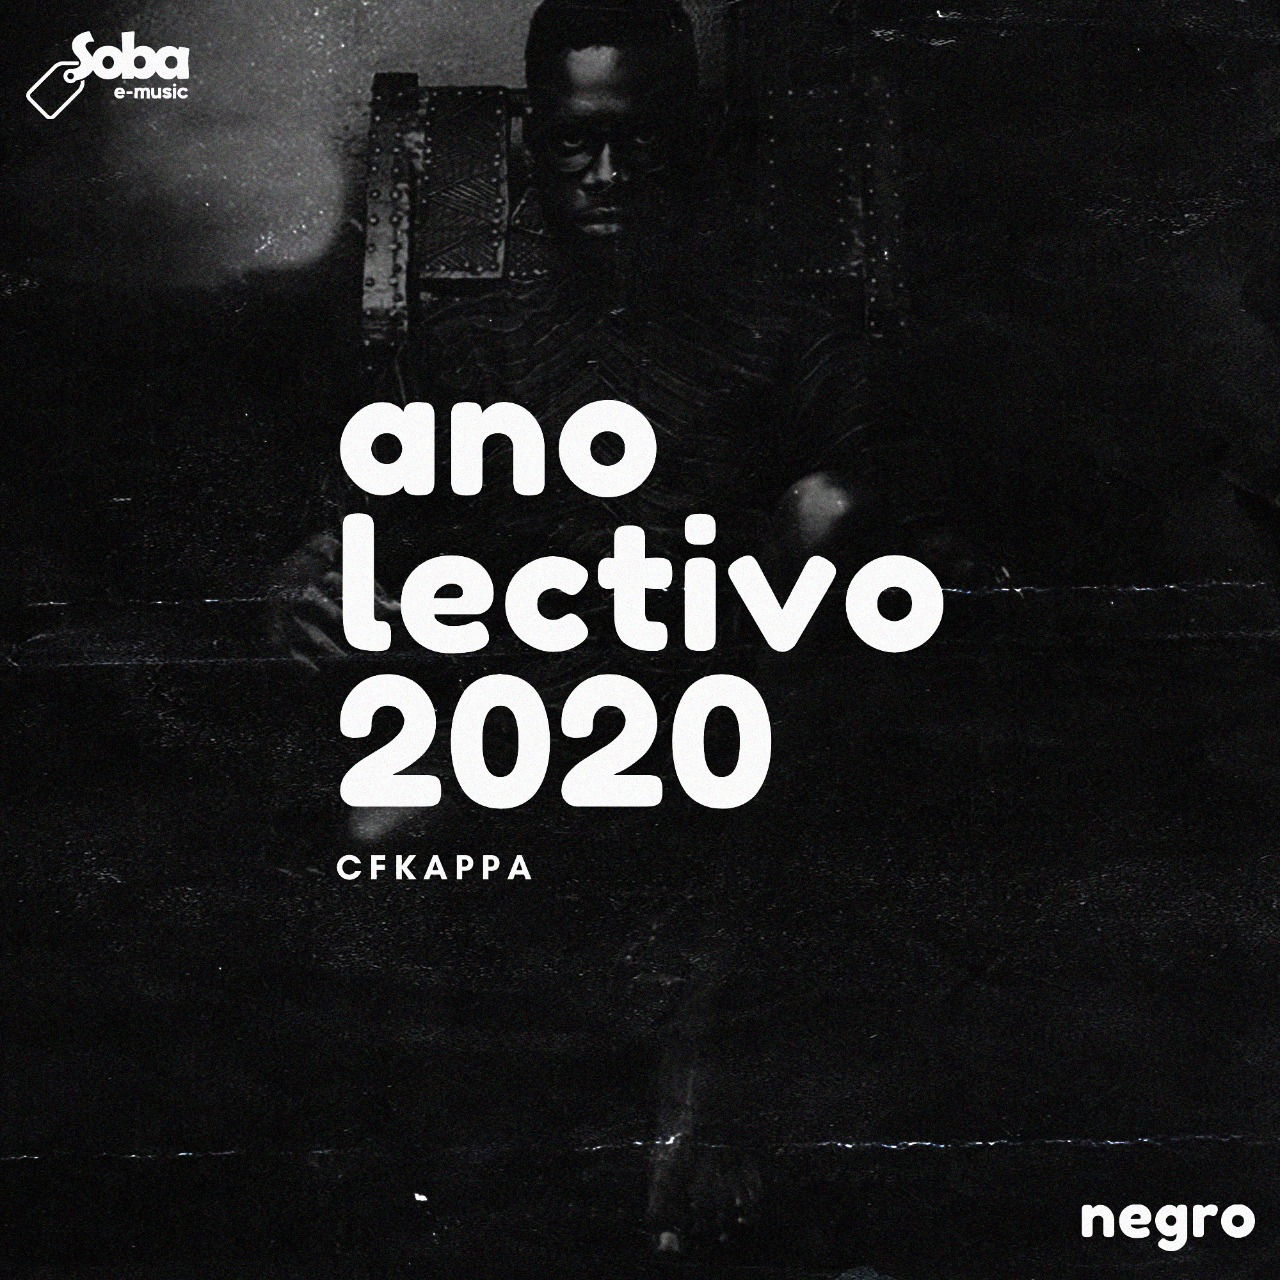 CFKappa - Ano Lectivo 2020 (feat. Breana Marin) [Prod. Yondo] [Download]